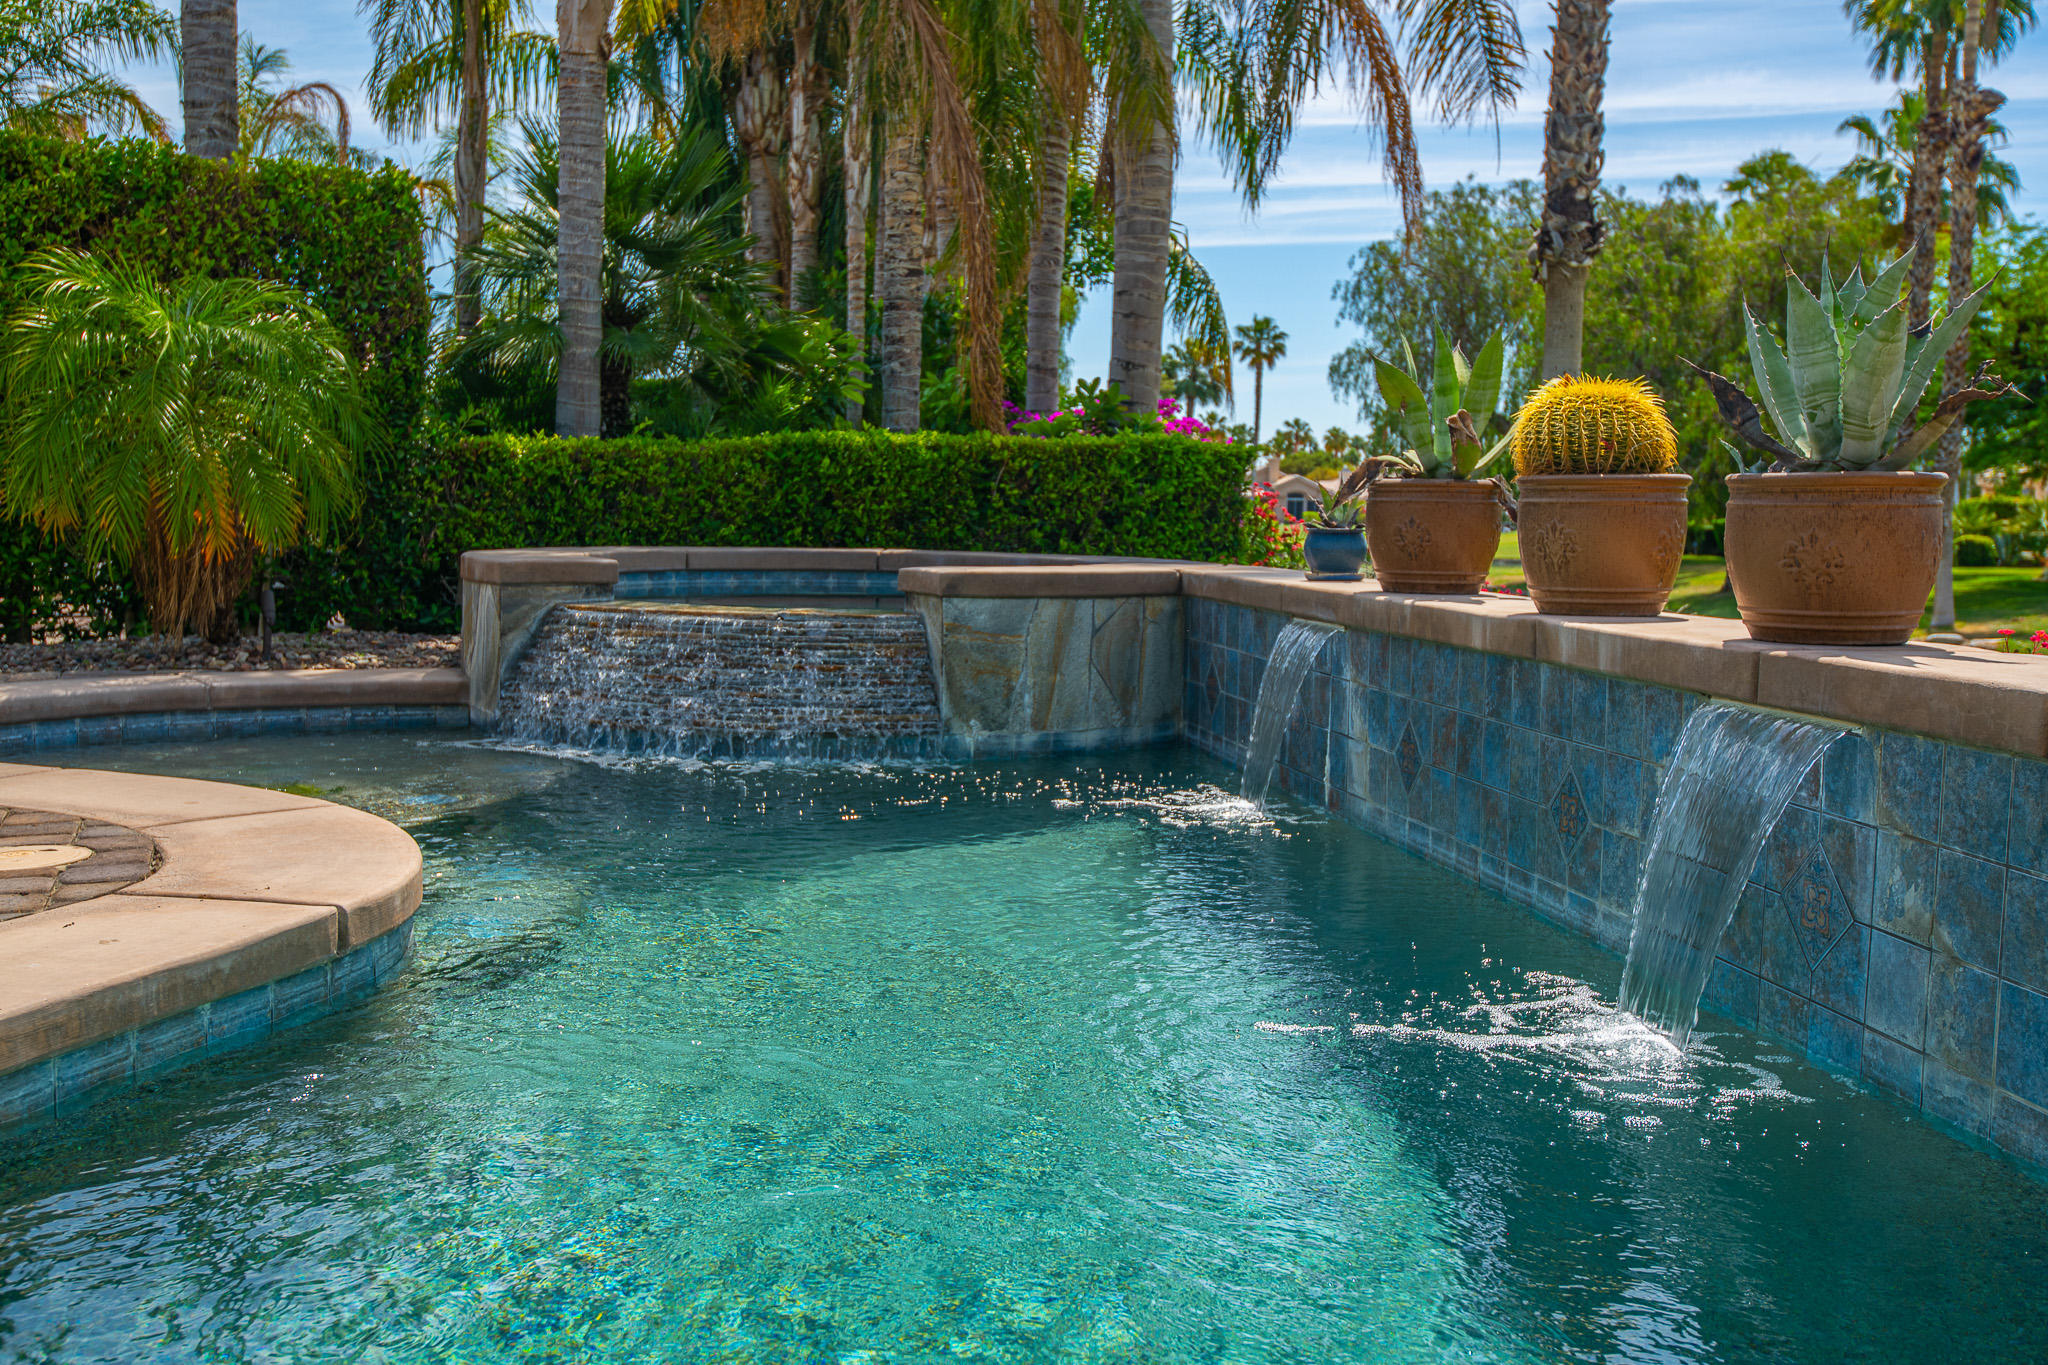 LAKEFRONT POOL VILLA ON FEE LAND!  One of the most desired locations within Desert Princess Palm Springs.  Your own private pool and spa with lake frontage and custom cobblestone patio. Located on a cul-de-sac with wide open grass area behind your yard.  Den currently used as 3rd BR.  Absolutely stunning!  Well cared for and turnkey ready to move in, or use for vacation rental income at $5500 per month in season.  Also eligible for a short term vacation rental permit (STVR).  Contact the City of Cathedral City for more details.  Incredible pool deck with golf course view.  HOA includes Country Club membership, tennis, spa, fitness center, racquetball and more. 27 holes of PGA championship golf.  Centrally located between downtown Palm Springs, Palm Desert and under 2 hours from anywhere in Southern California.  Virtual Showings via Zoom or Facebook Live, or come by in person for a showing.